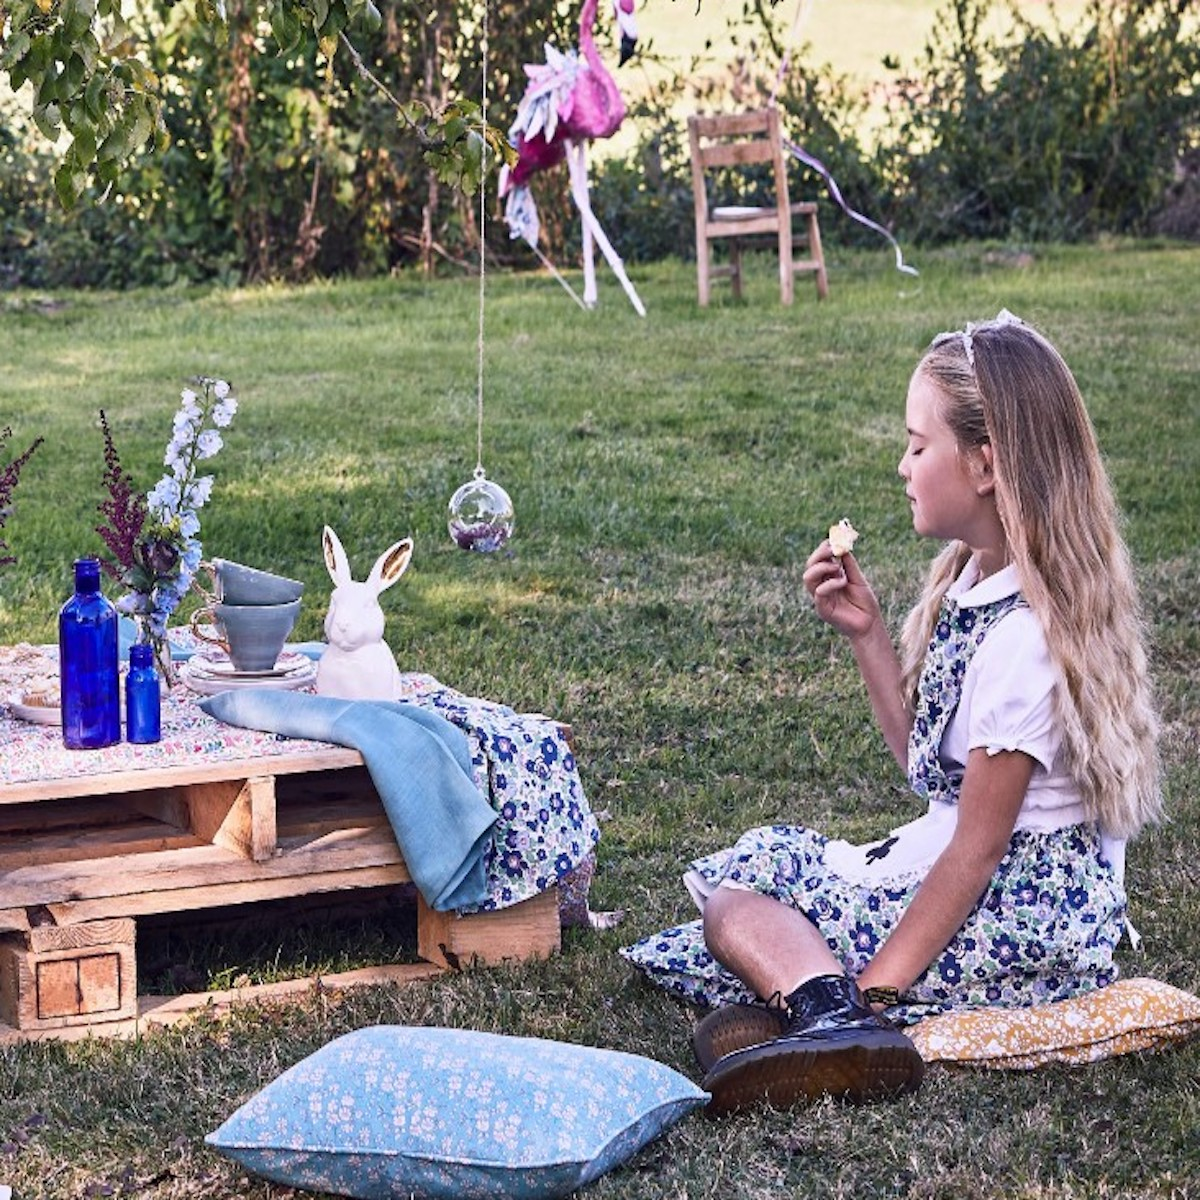 Young girl having a tea party outdoors